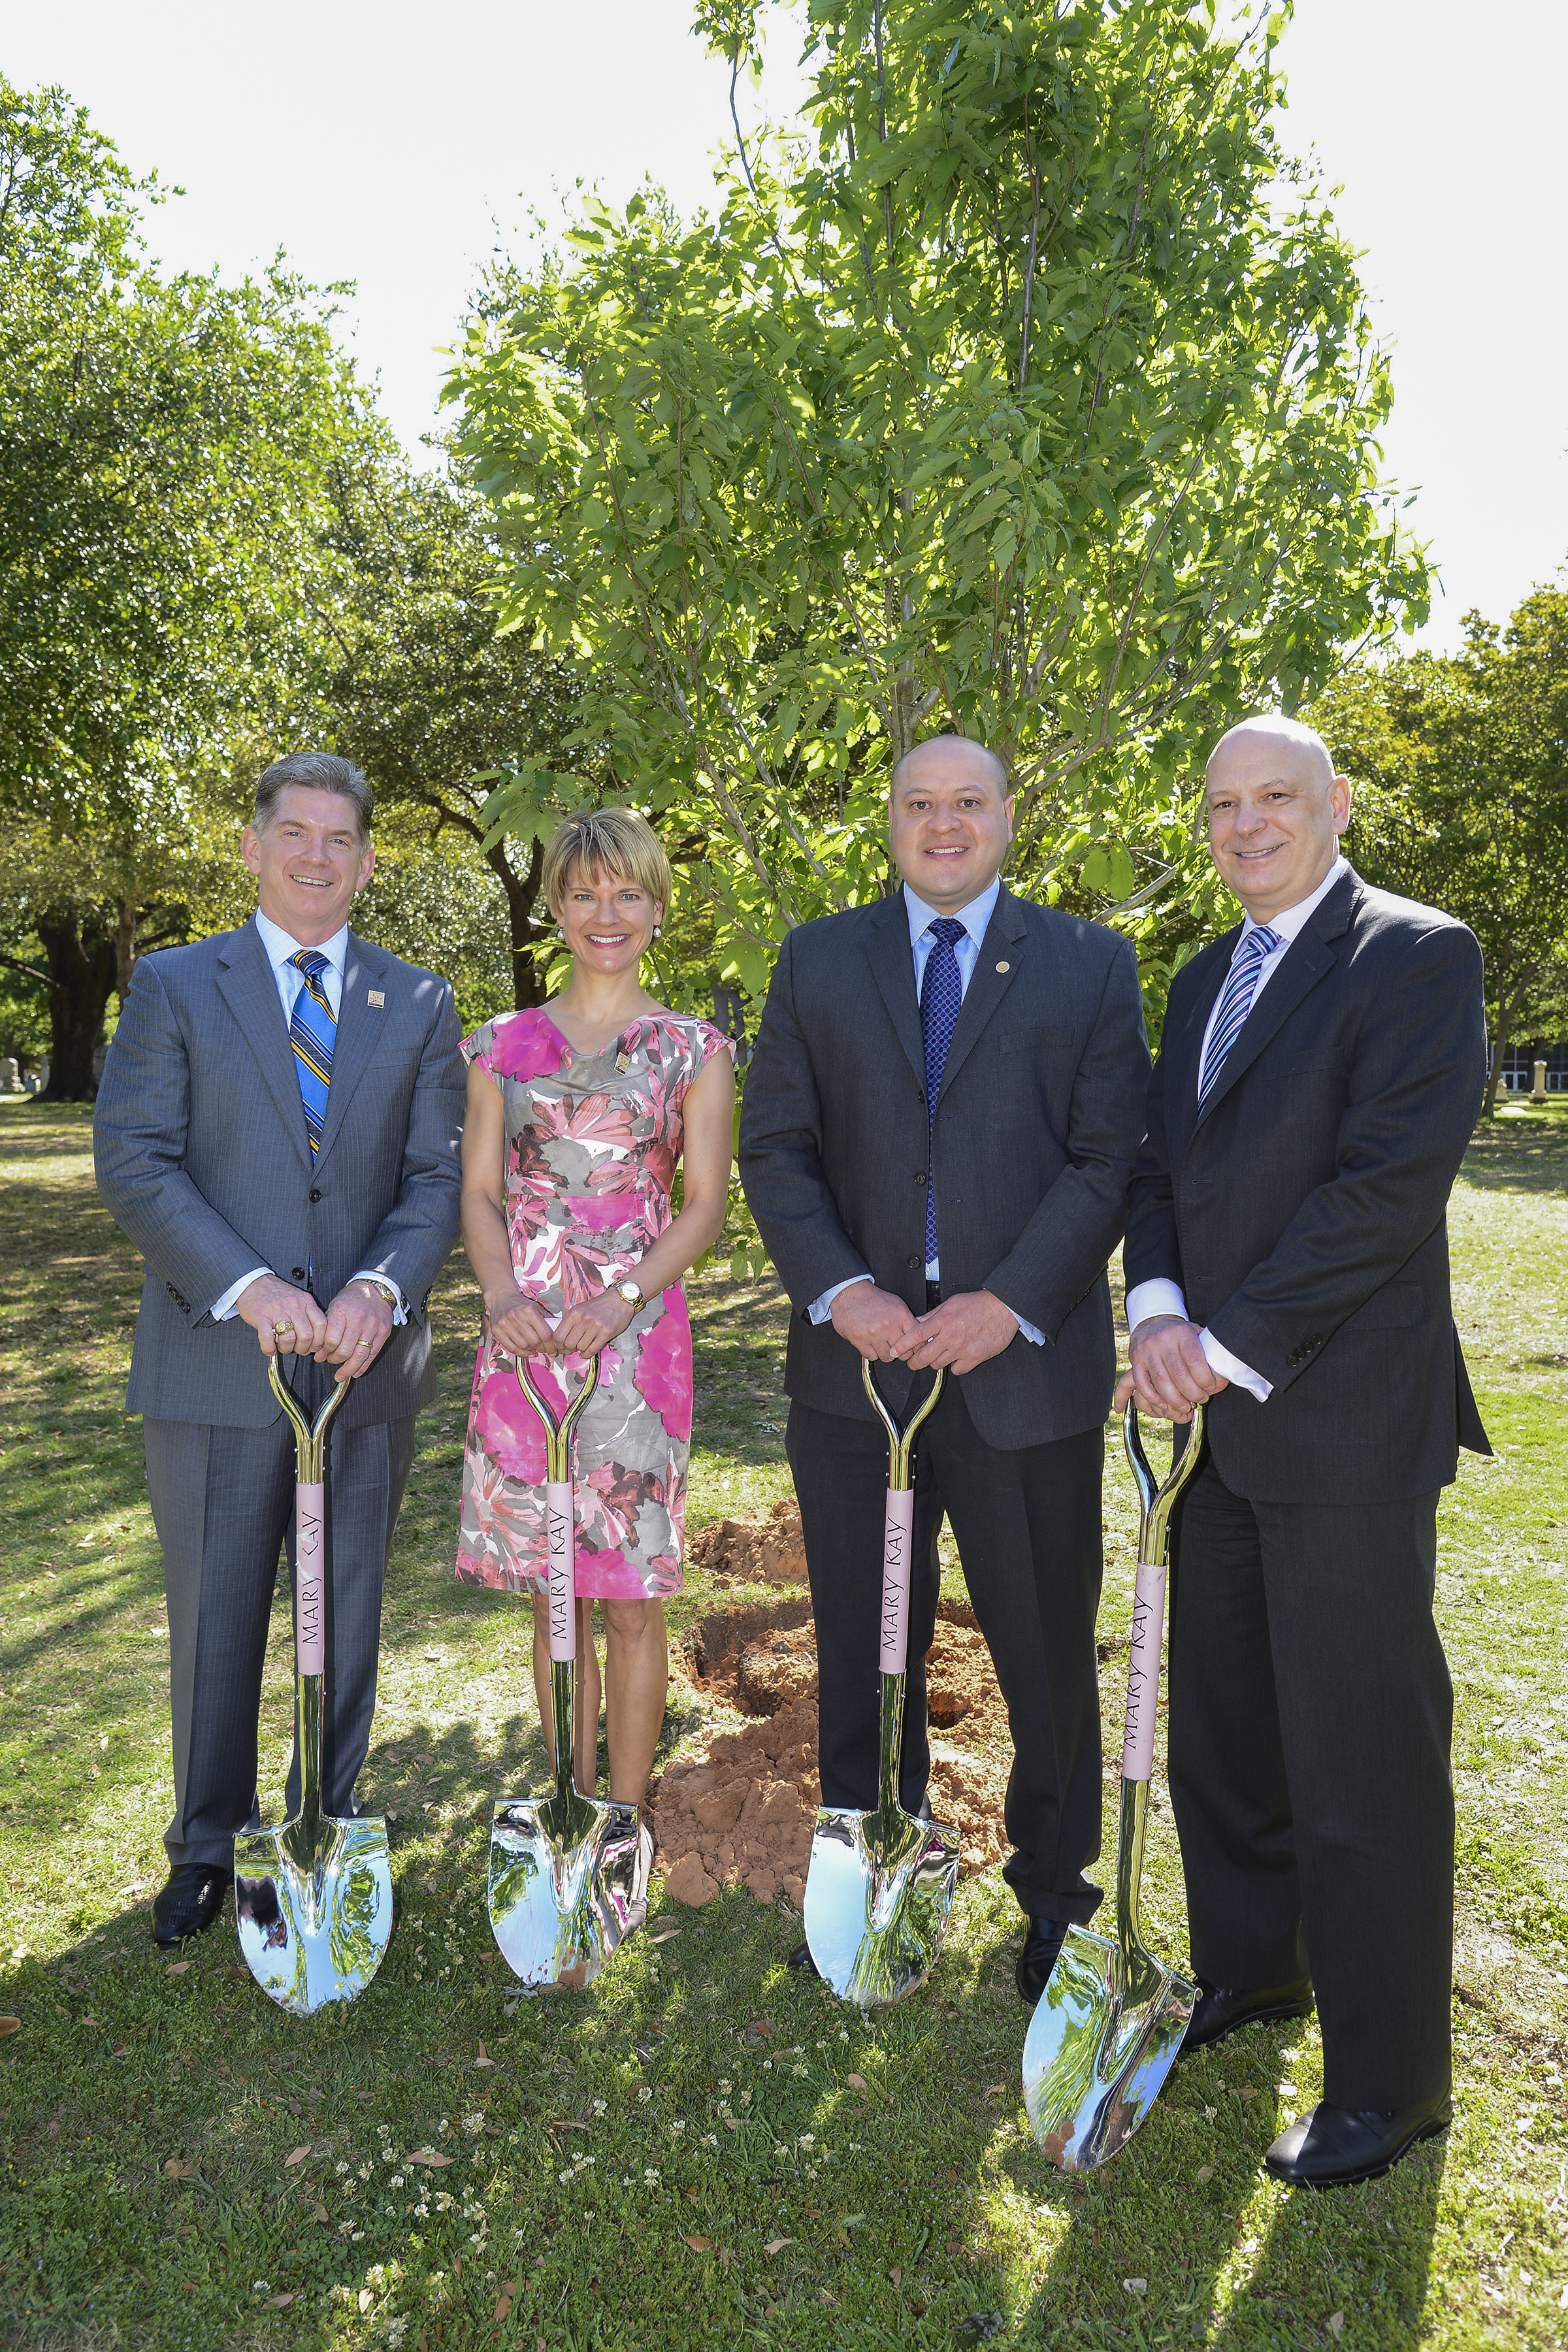 In celebration of National Arbor Day, the City of Dallas and Mary Kay Inc. dedicate the Mary Kay Ash Grove in Pioneer Park outside the Kay Bailey Hutchison Convention Center. From left: Nathan Moore, Chief Legal Officer for Mary Kay Inc.; Dr. Beth Lange, Chief Scientific Officer for Mary Kay Inc.; Adam Medrano, Dallas City Council District 2; and Ron King, Director of Conventions and Events for the City of Dallas. (Photo: Business Wire)